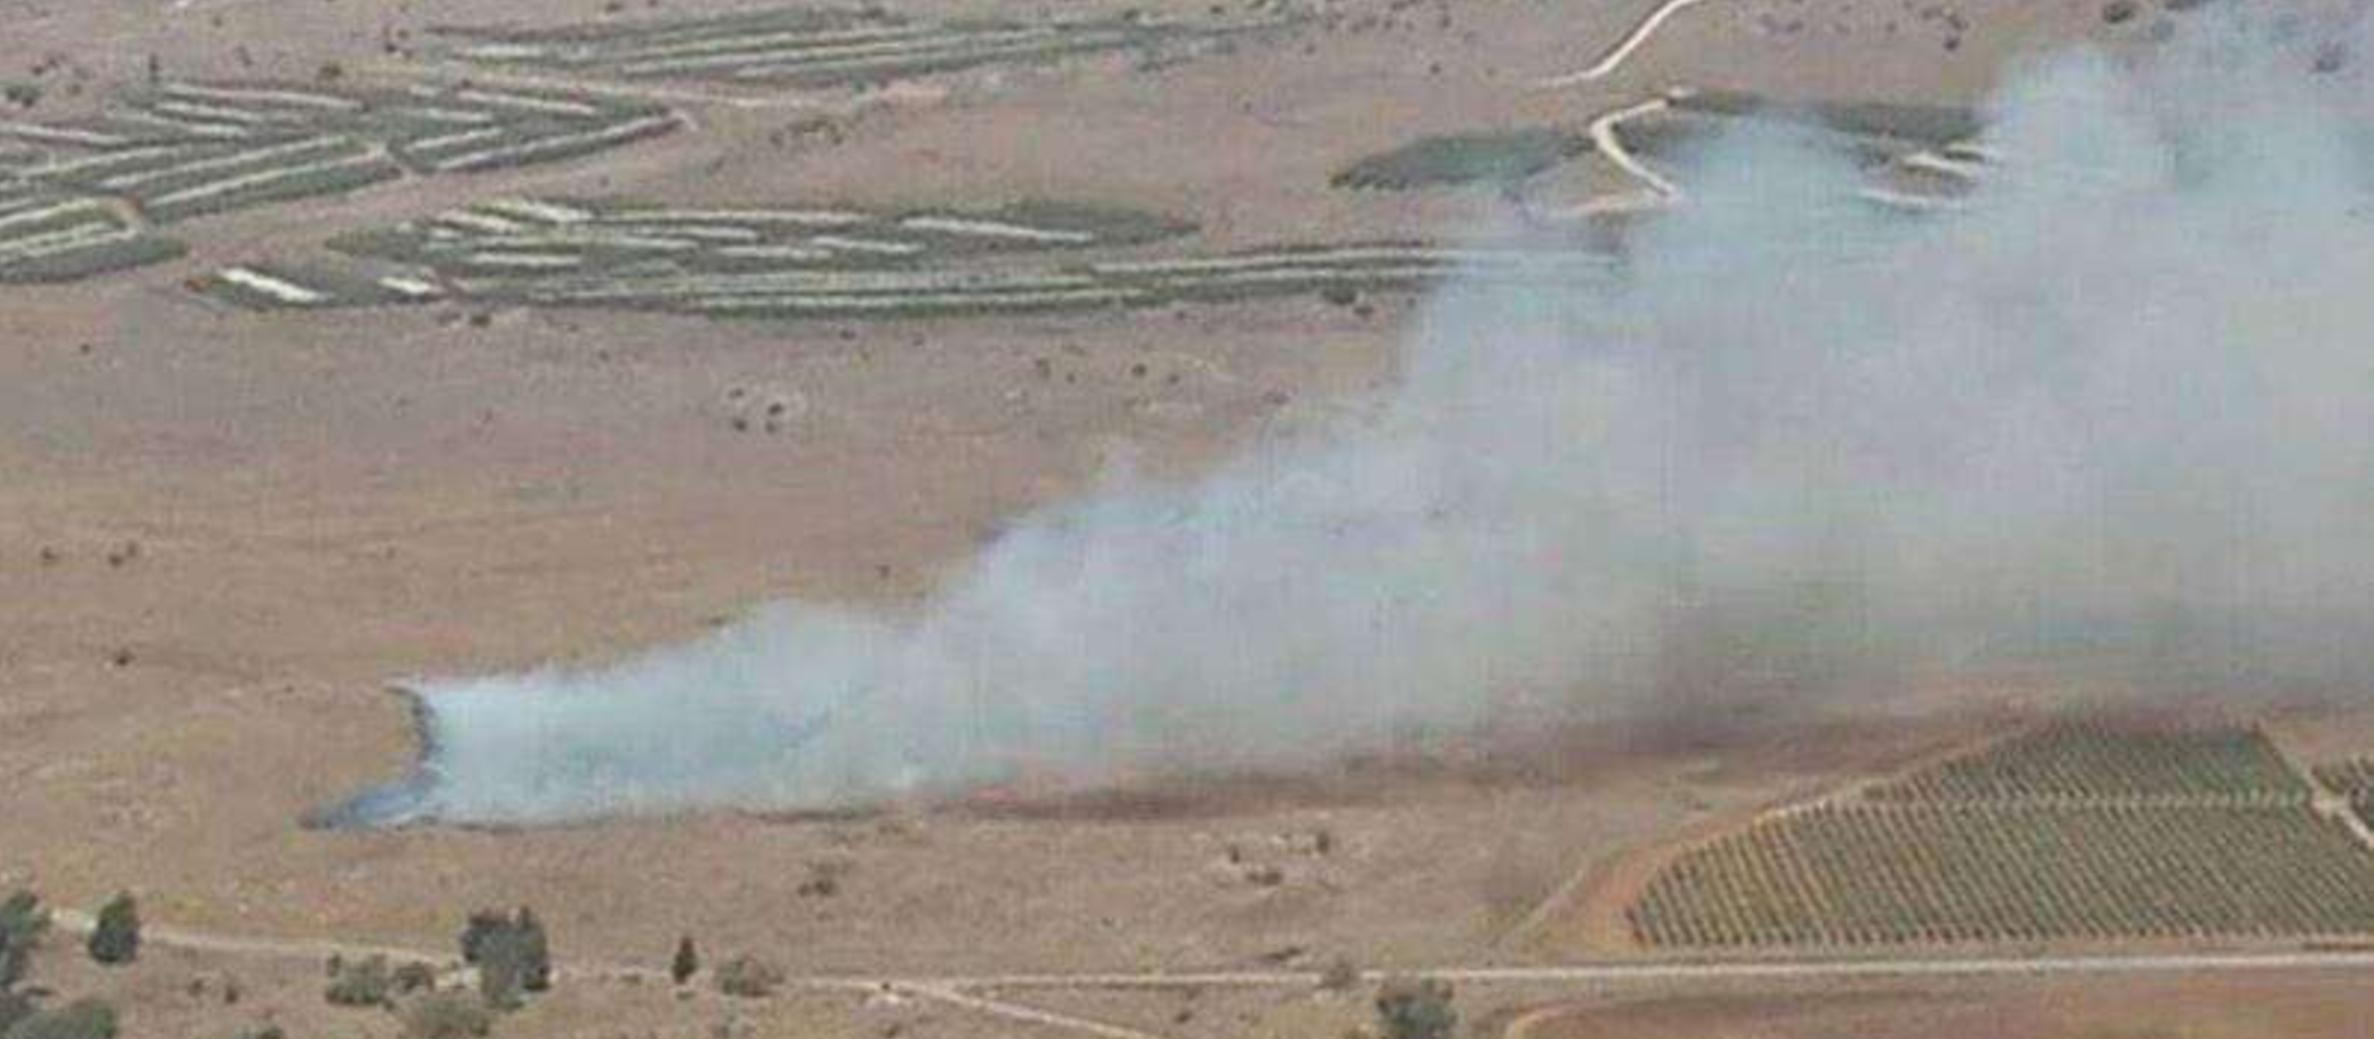 Rockets from Syria target northern Israel – IDF responds with air strikes